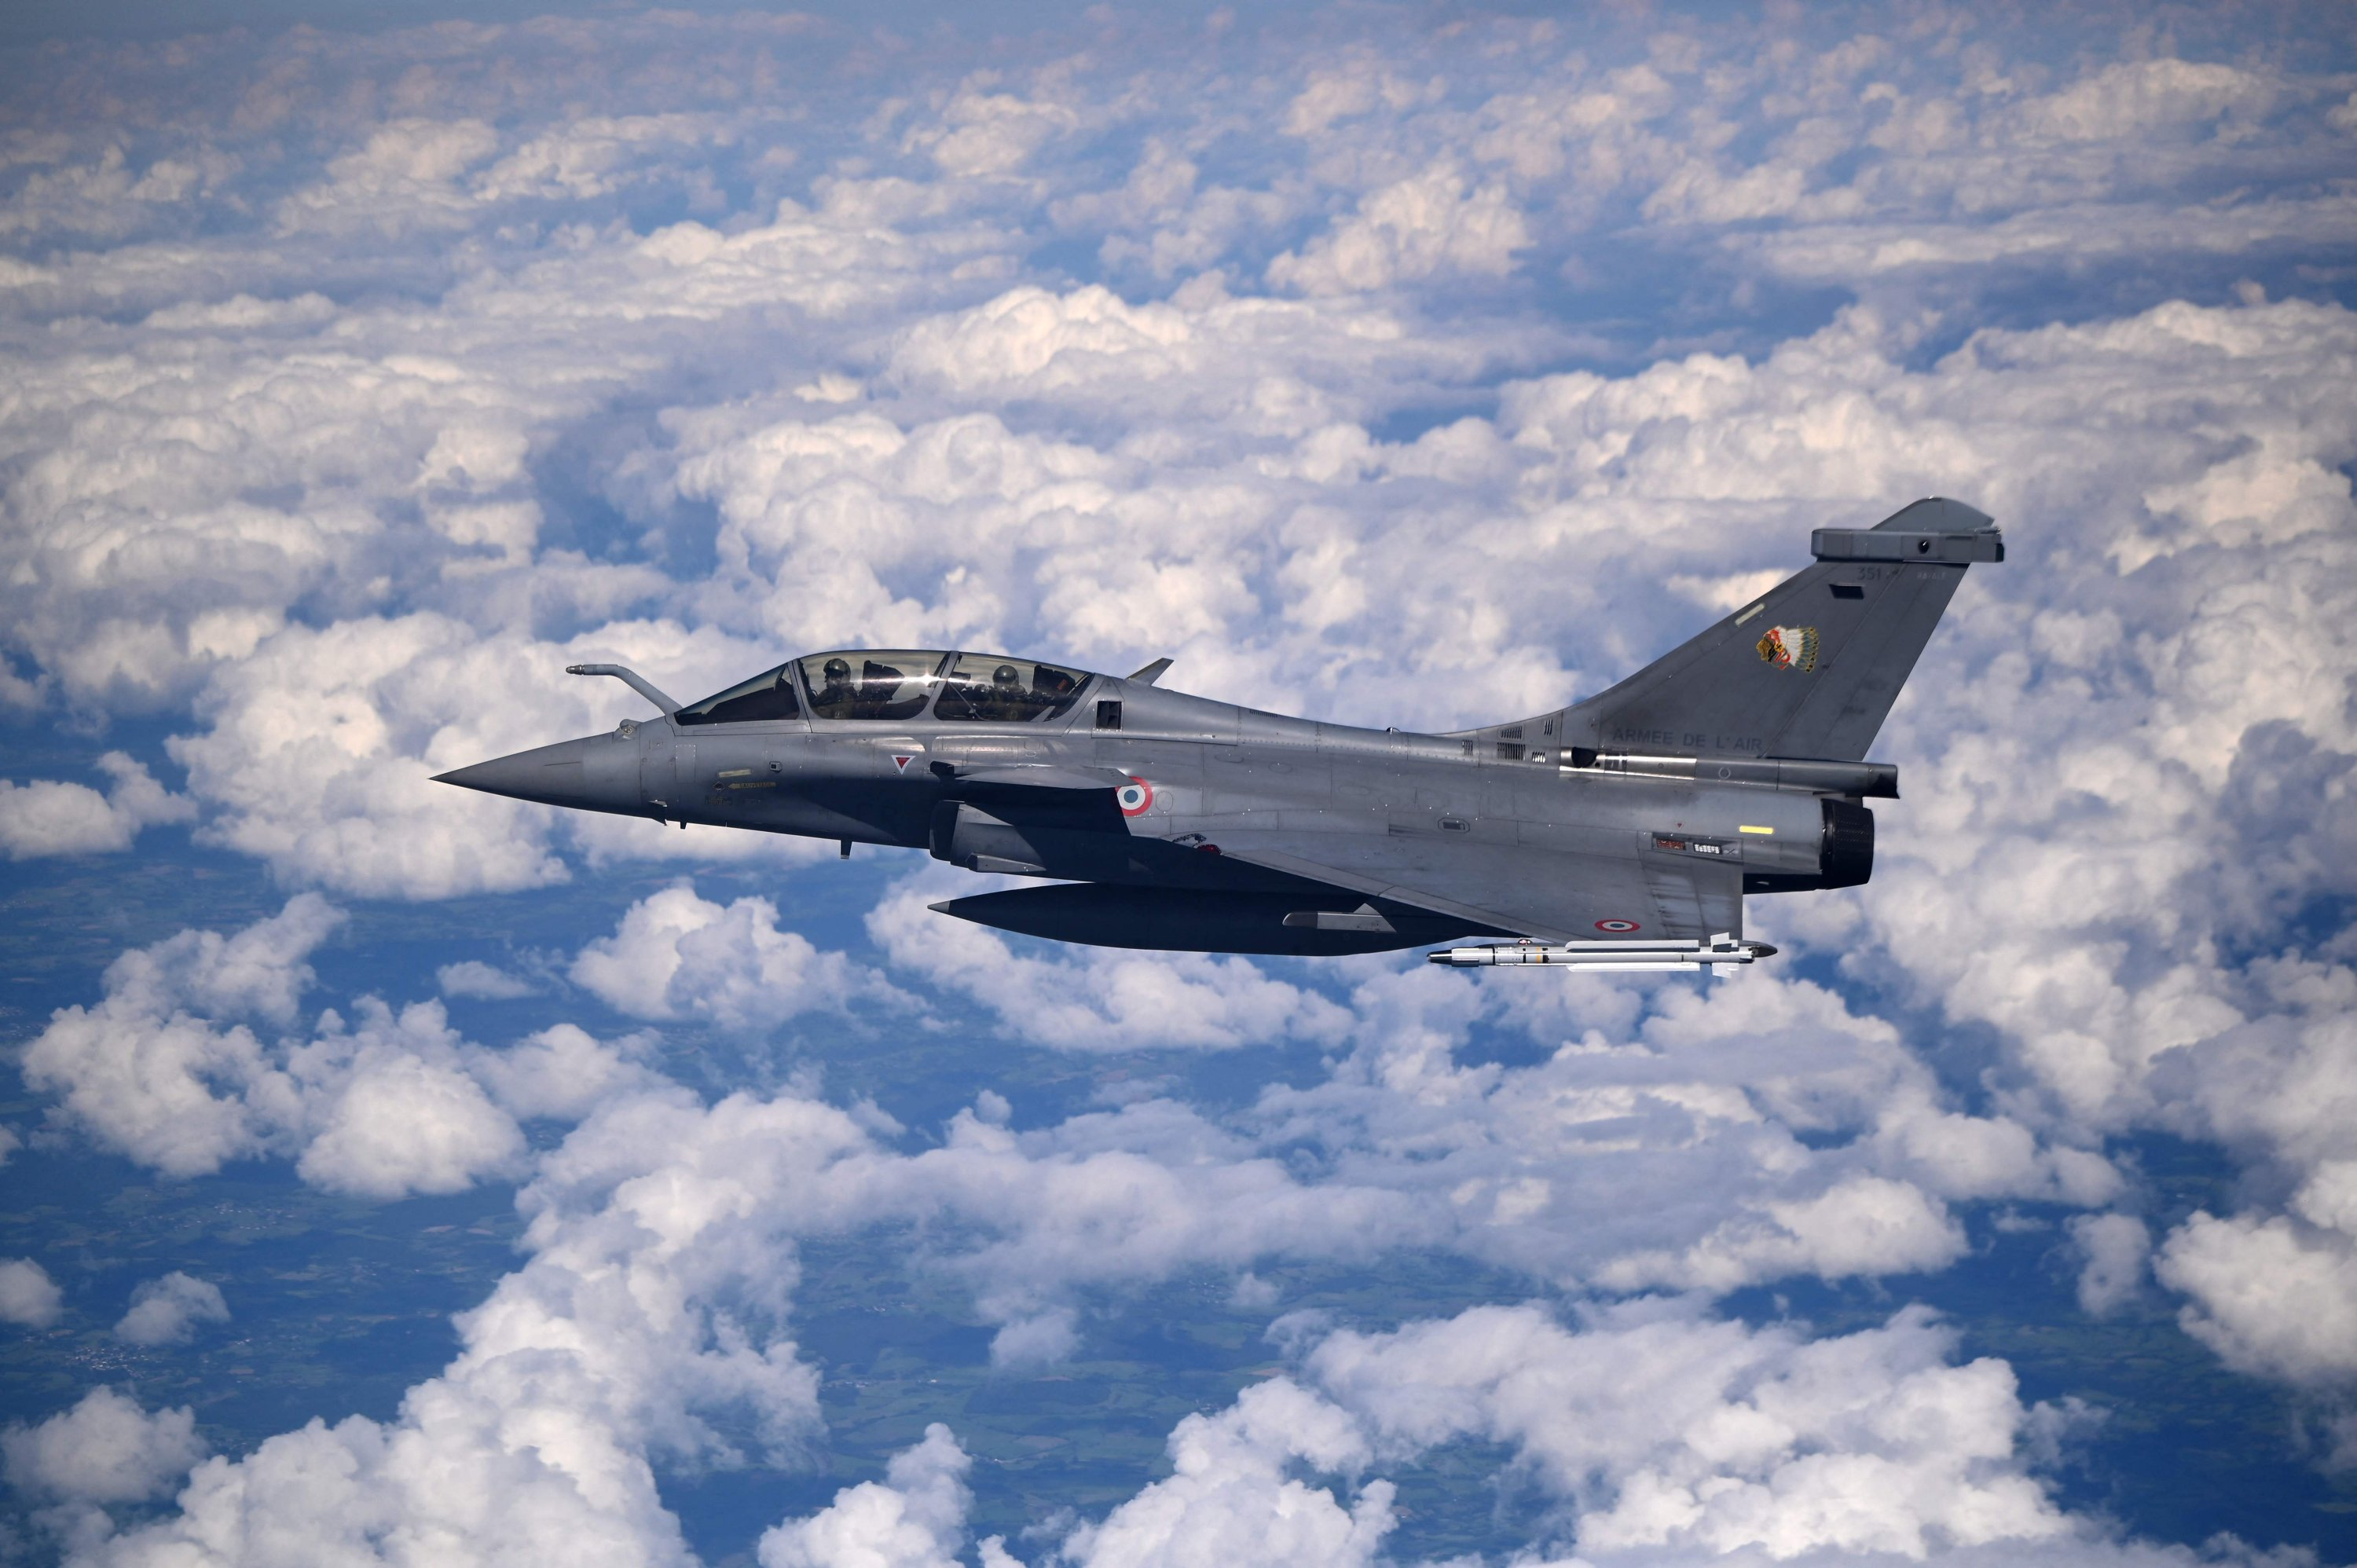 A French twin-engine, canard delta wing, multirole fighter aircraft Rafale mid-flight on Sept. 11, 2021. (AFP Photo)